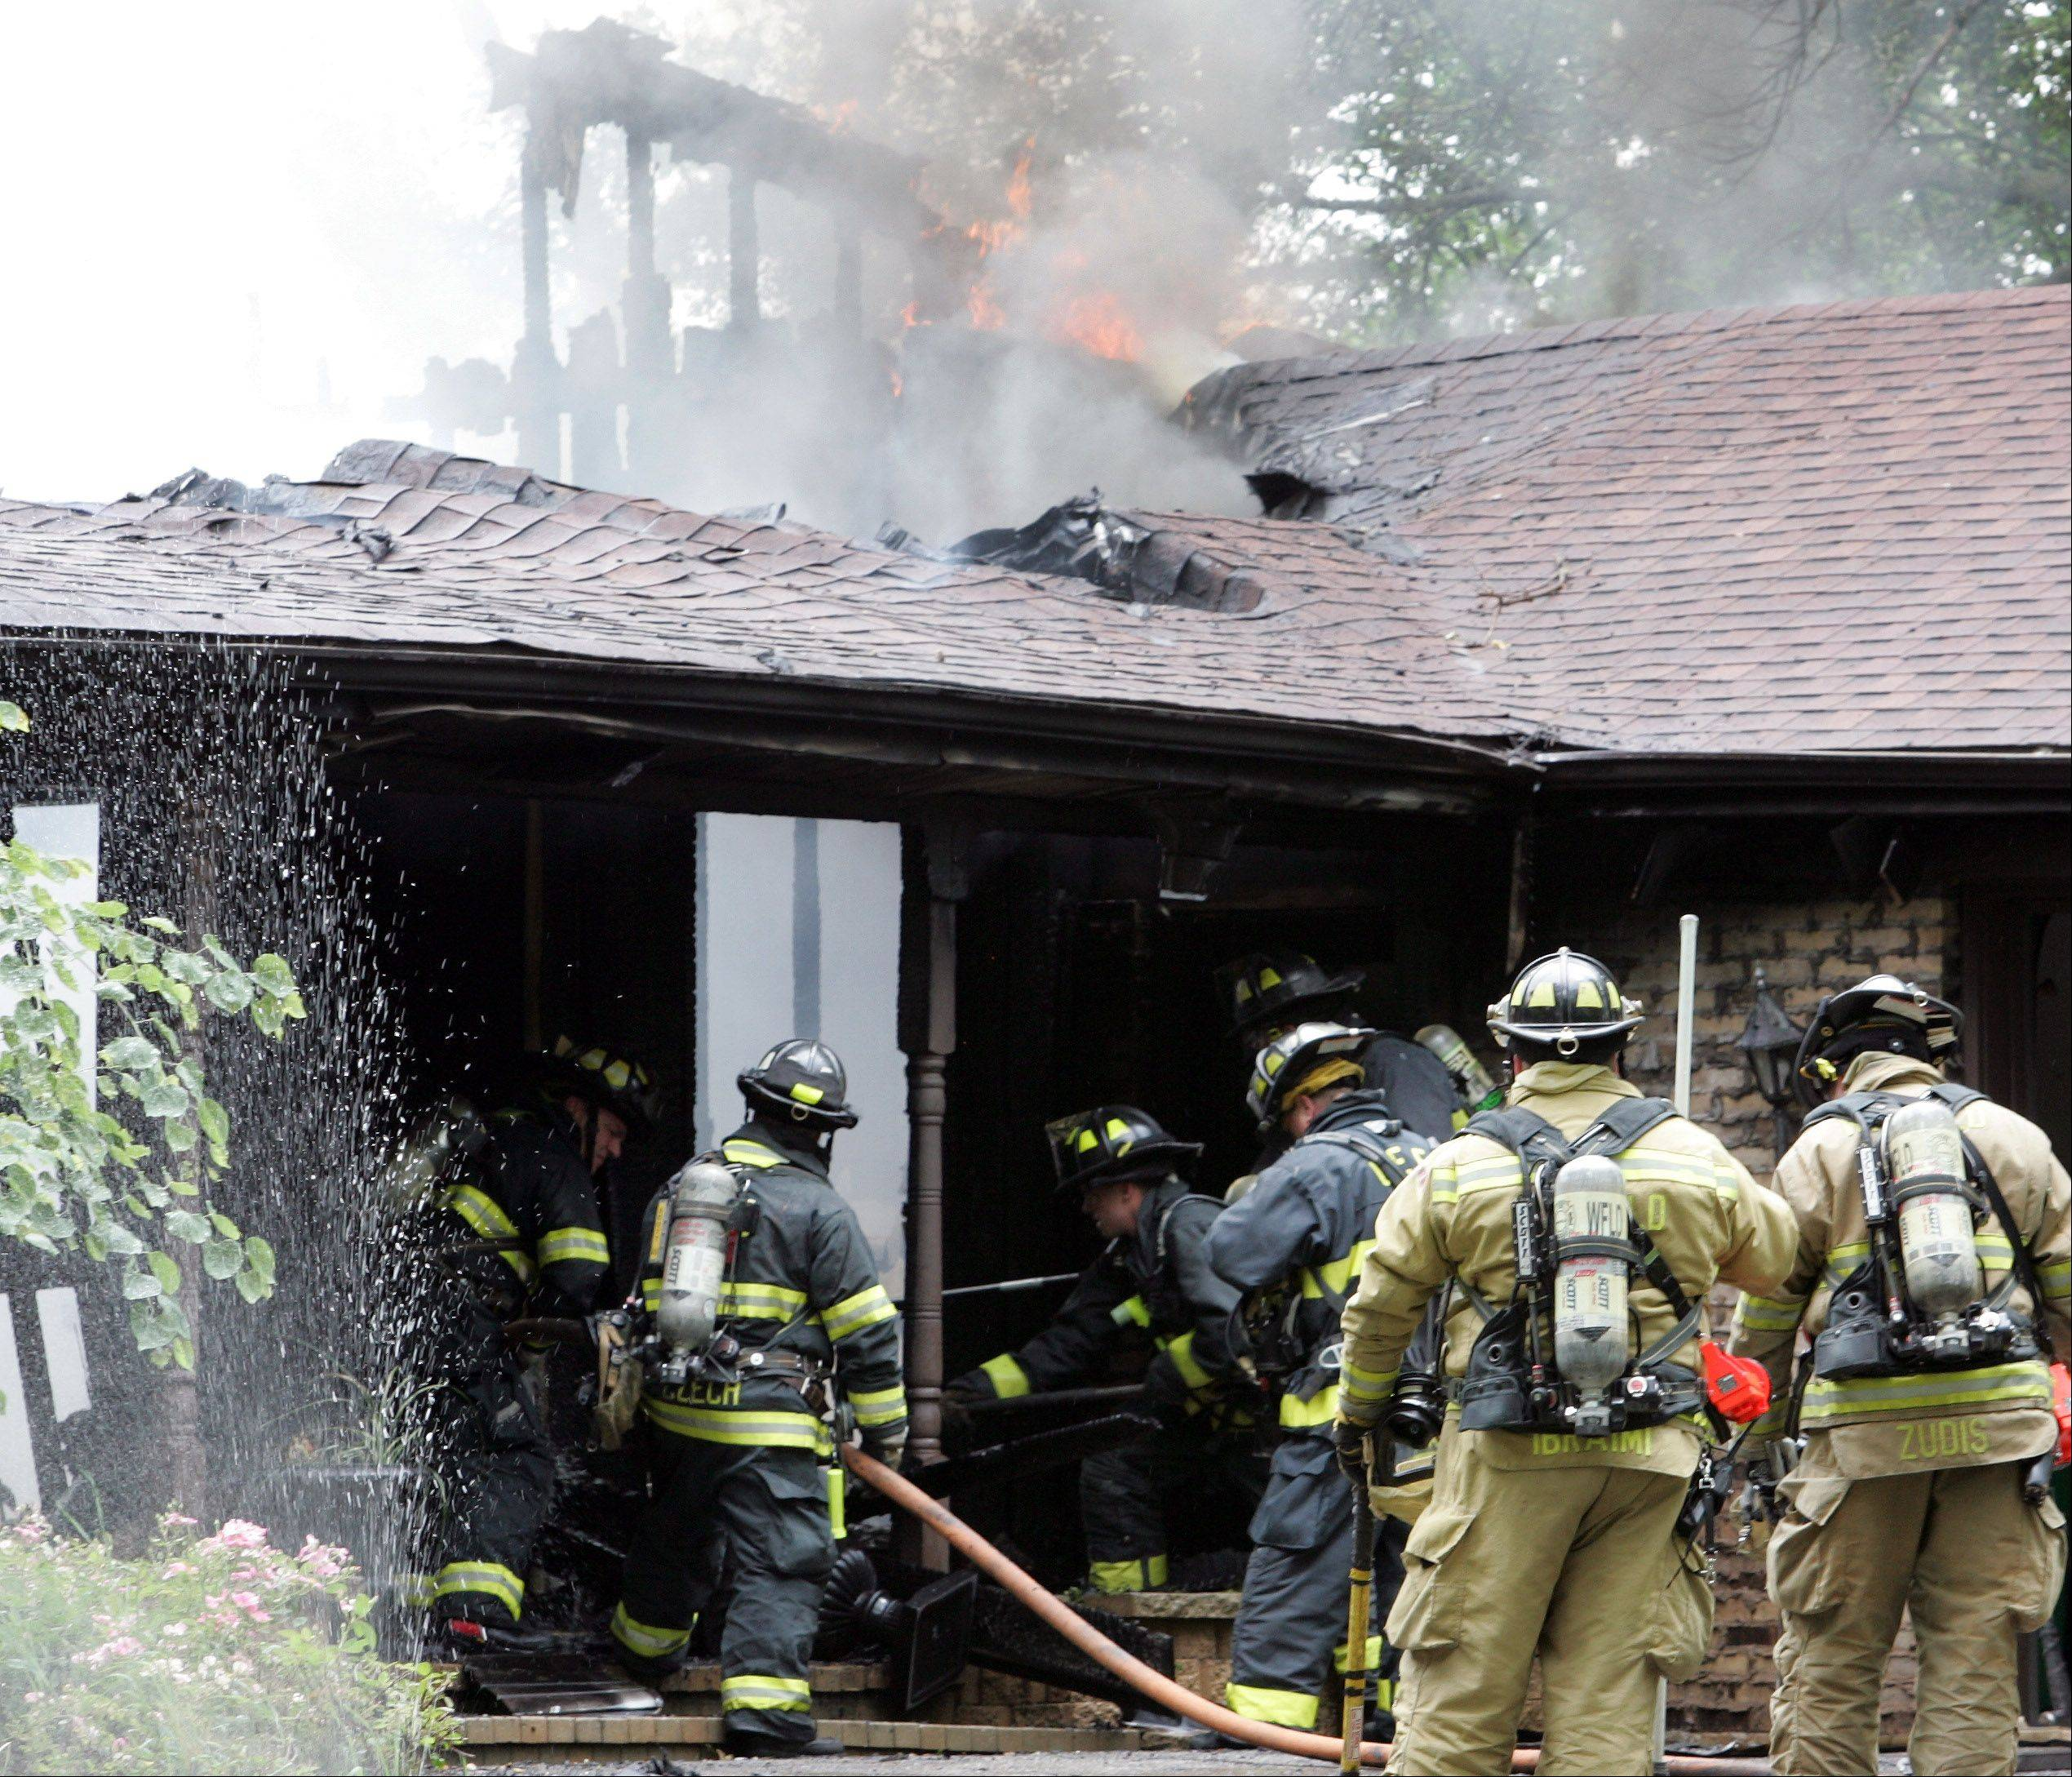 Homeowner John Chitkowski said he and his wife were running errands when he received a call from a neighbor telling him his house near Glen Ellyn was on fire. The family's two teenage daughters were not home when the blaze began.